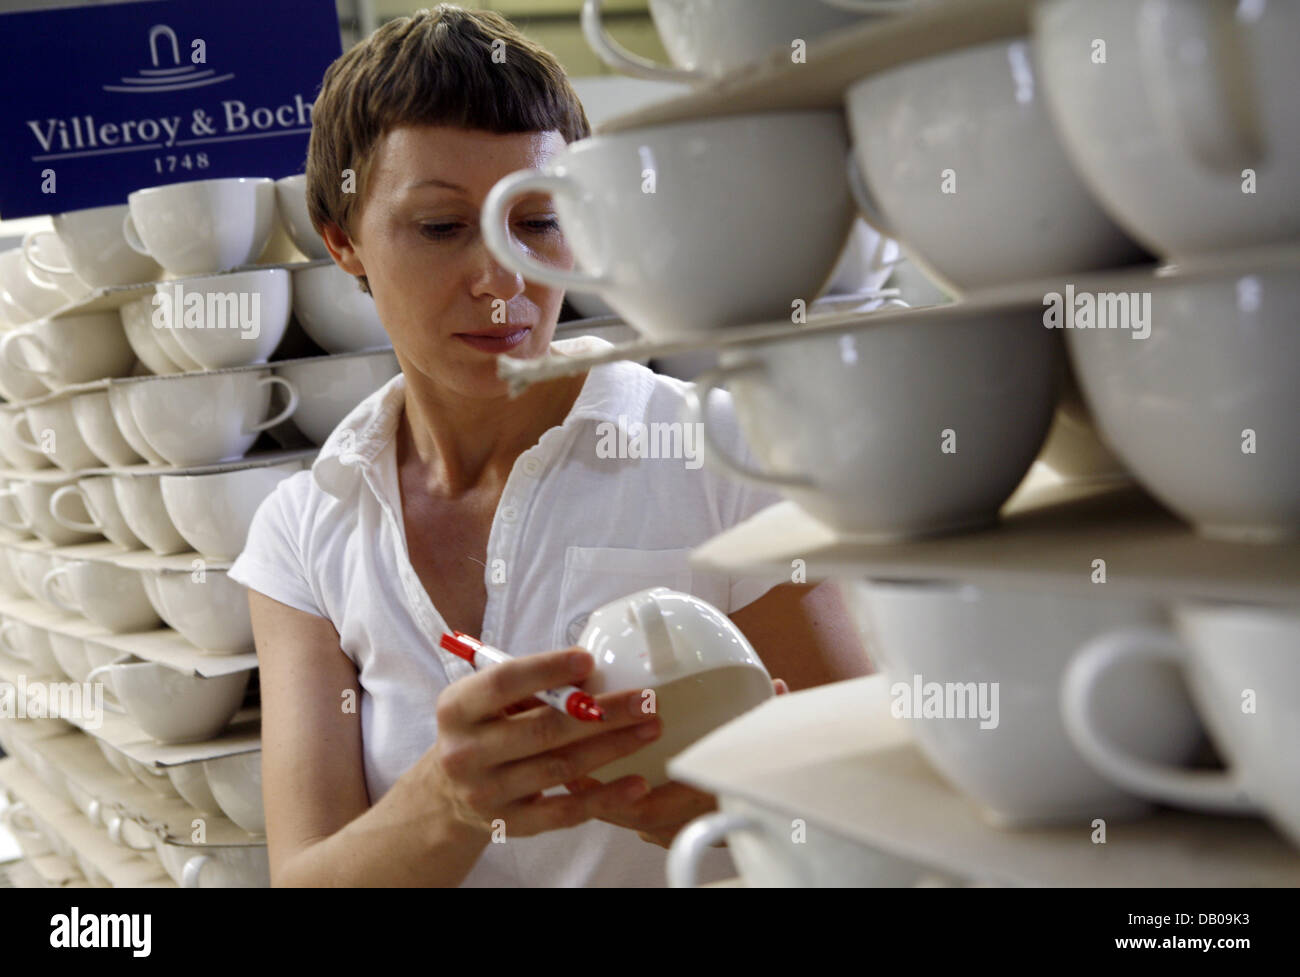 A worker checks cups at the tableware manufacturer Villeroy